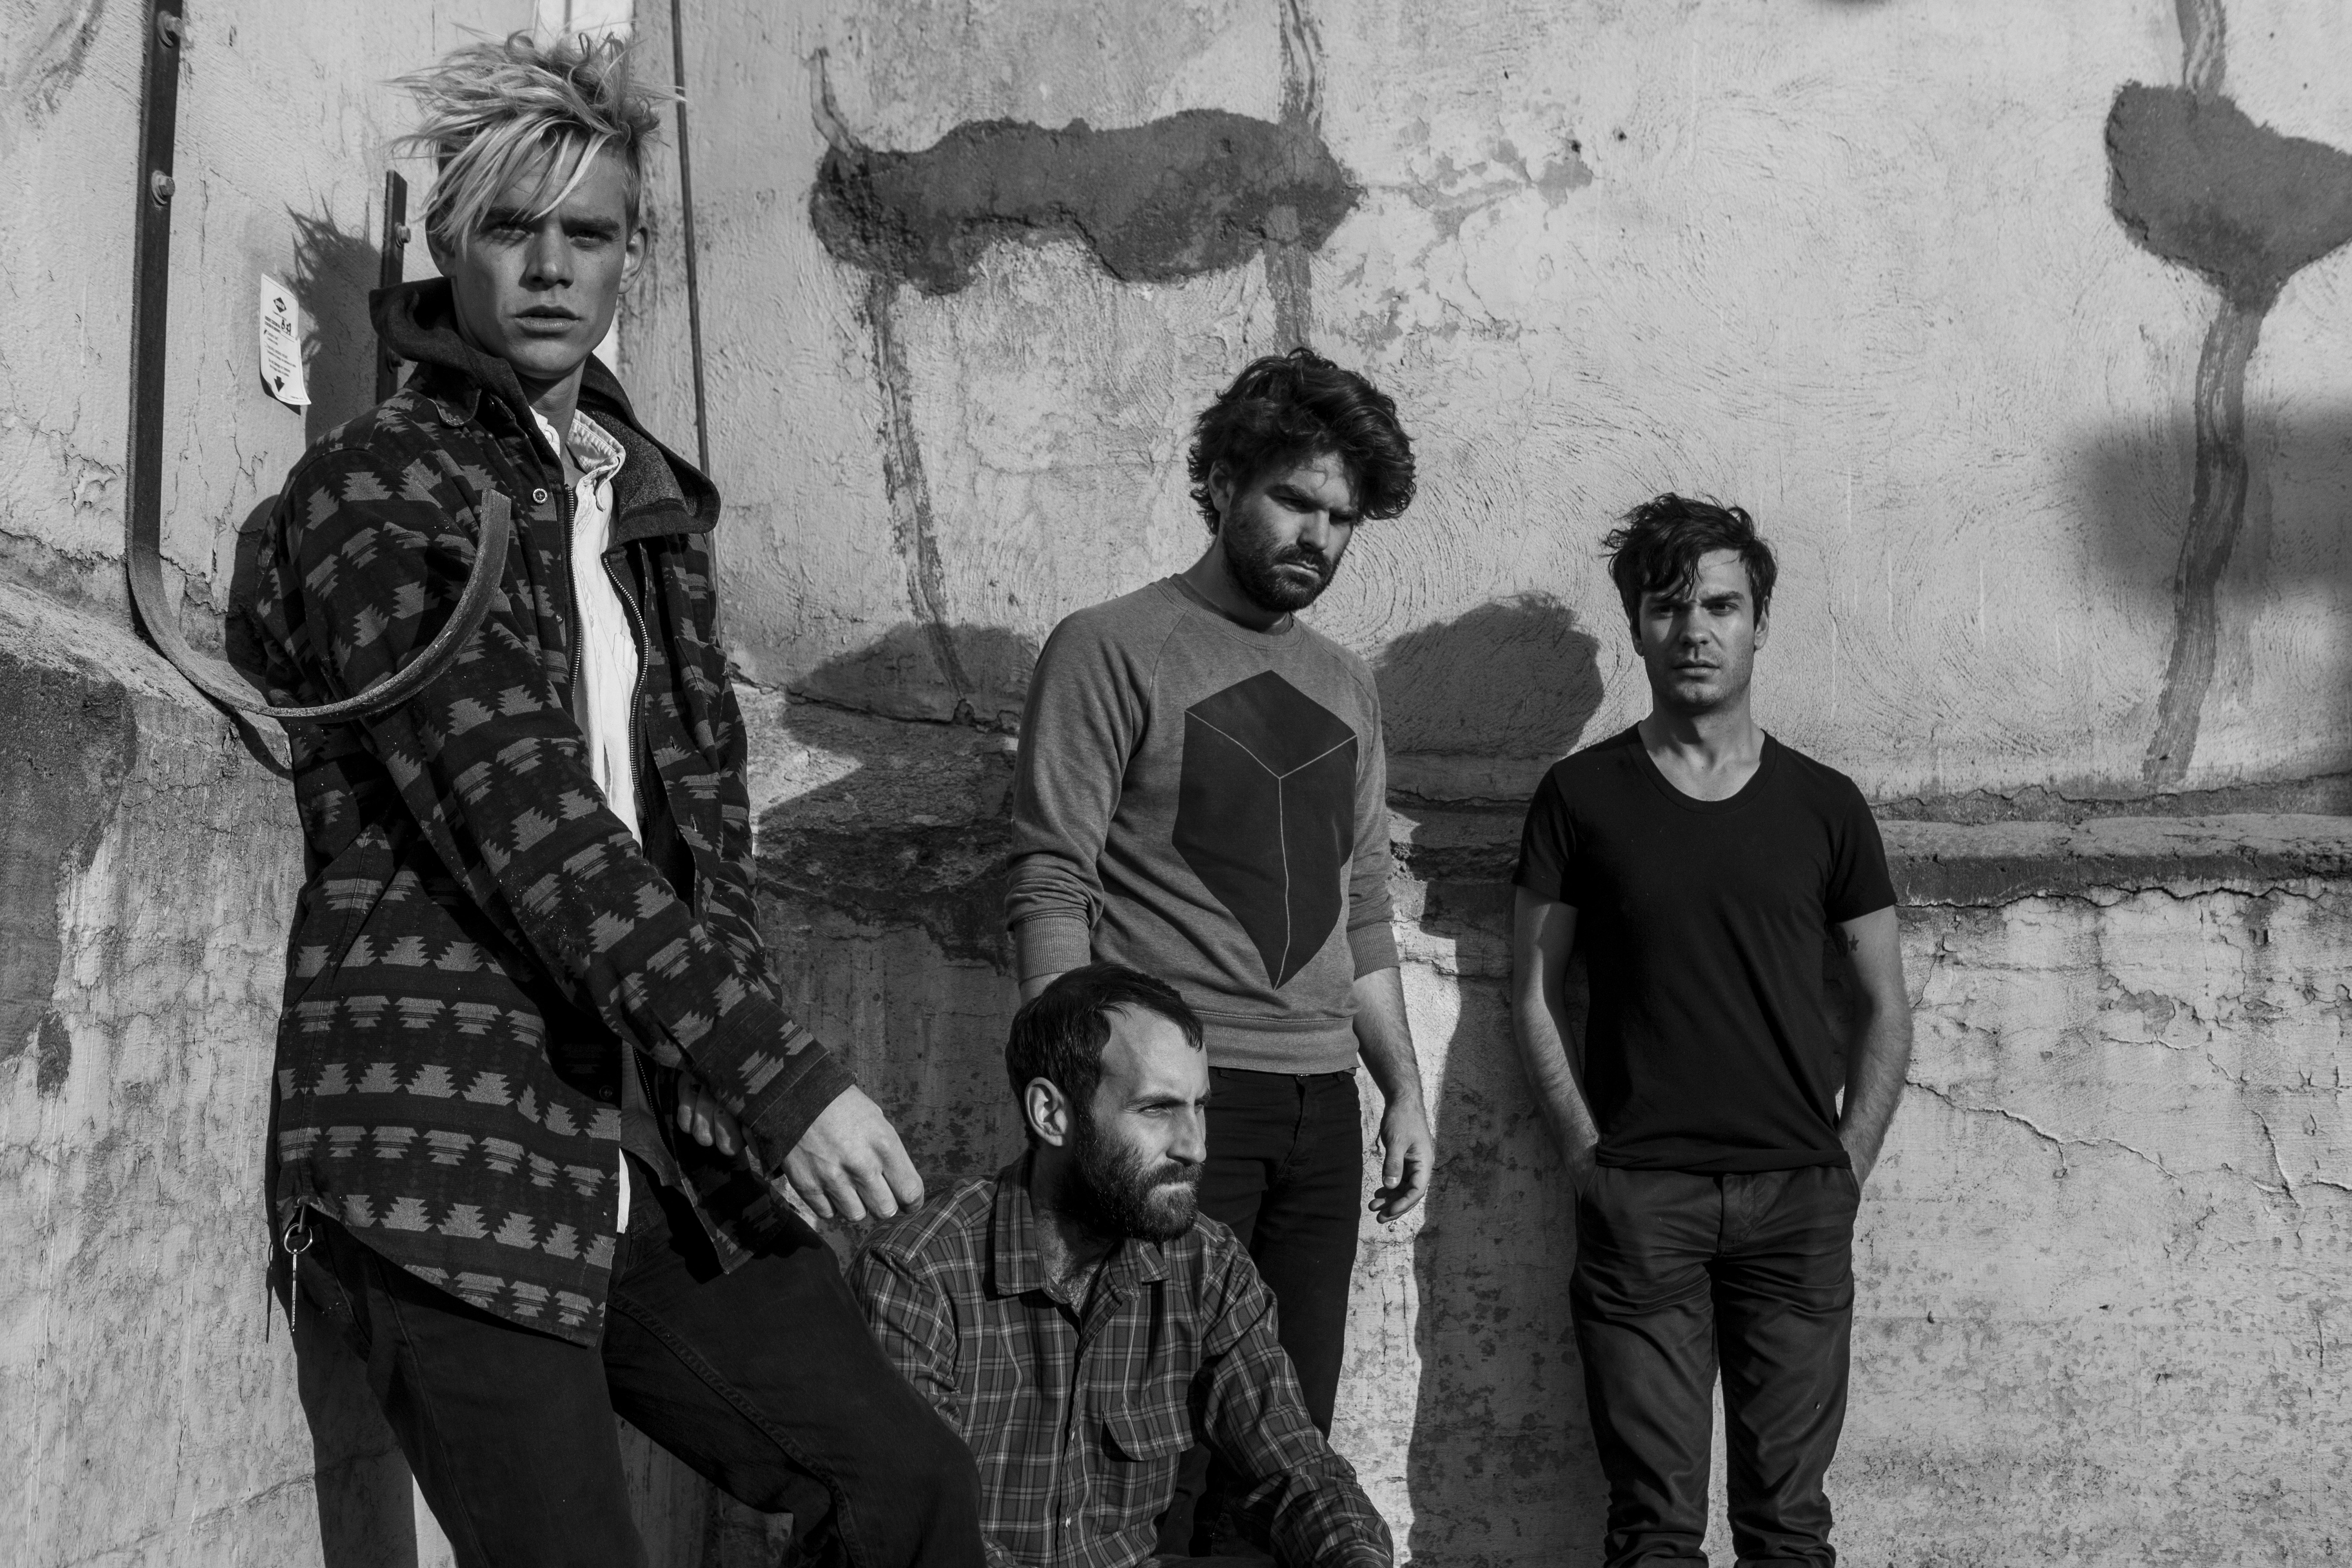 """Viet Cong release their new video for """"Bunker Buster"""", the track come from their current album 'Viet Cong',"""